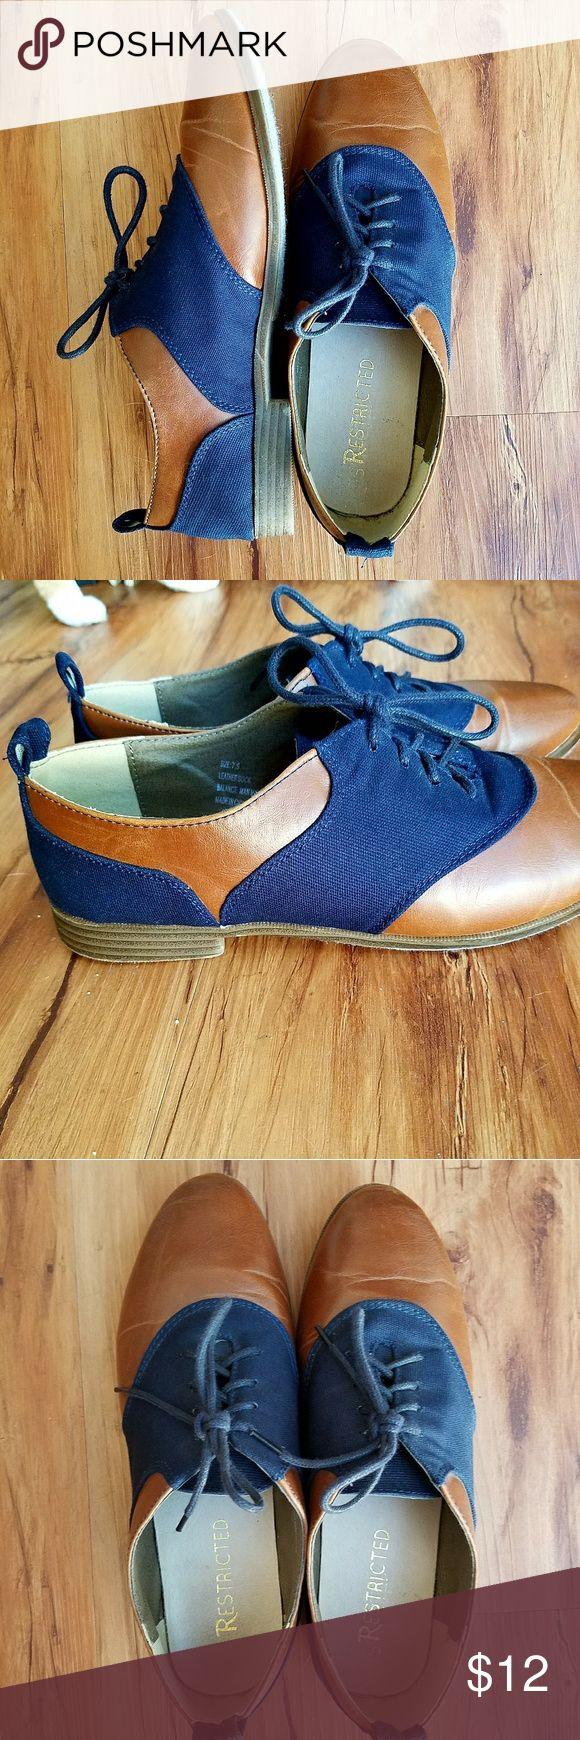 Blue&brown faux-leather oxfords by Restricted, 7.5 Blue canvas and light brown faux leather lace up oxfords. Nice and light.  The leather has some creases in the front, otherwise very goos condition! By Restricted, size 7.5.  No shoebox, sorry!  Any questions, please ask! Restricted Shoes Flats & Loafers